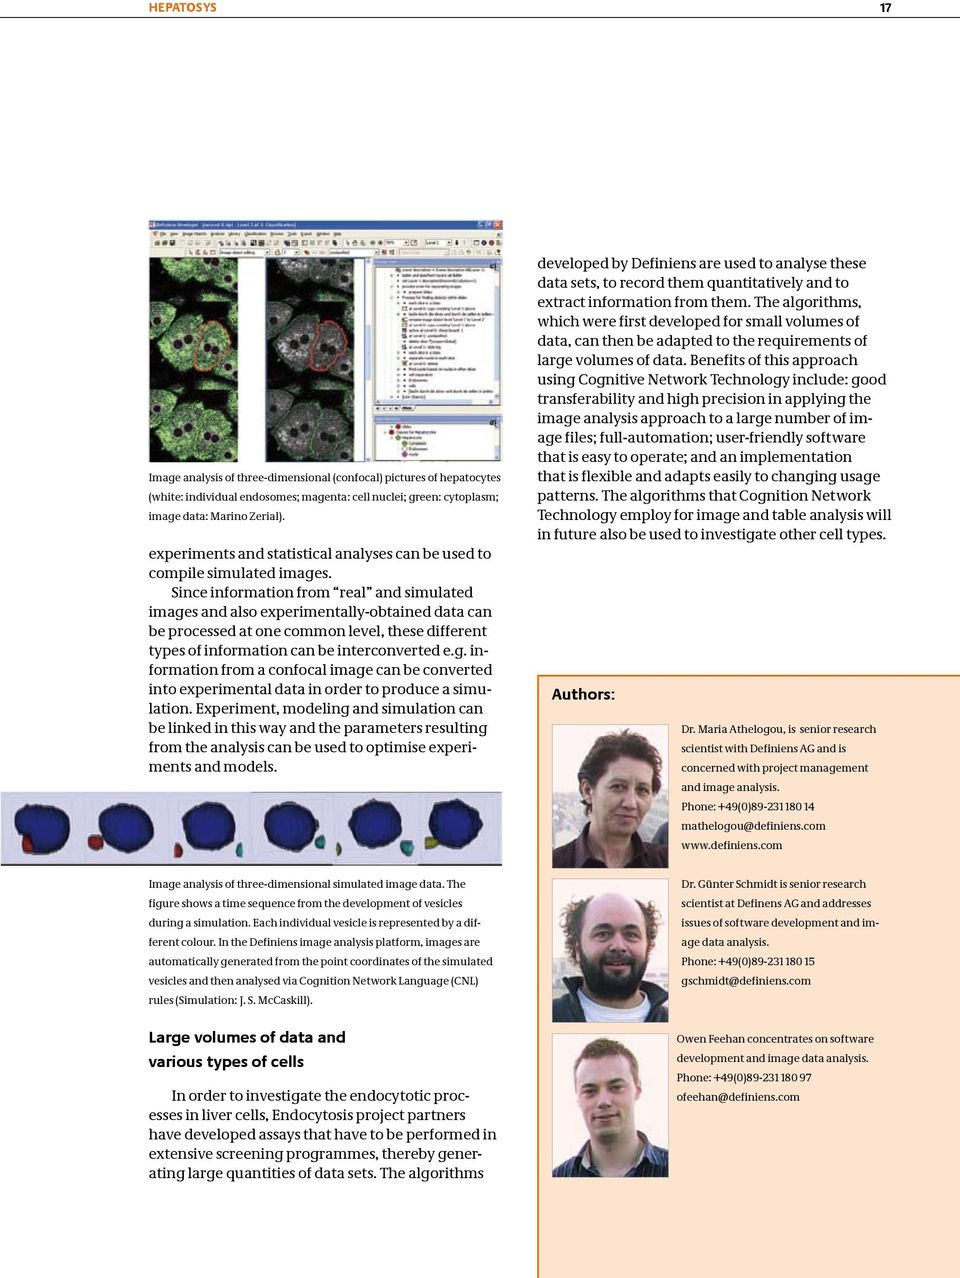 Since information from real and simulated images and also experimentally-obtained data can be processed at one common level, these different types of information can be interconverted e.g. information from a confocal image can be converted into experimental data in order to produce a simulation.